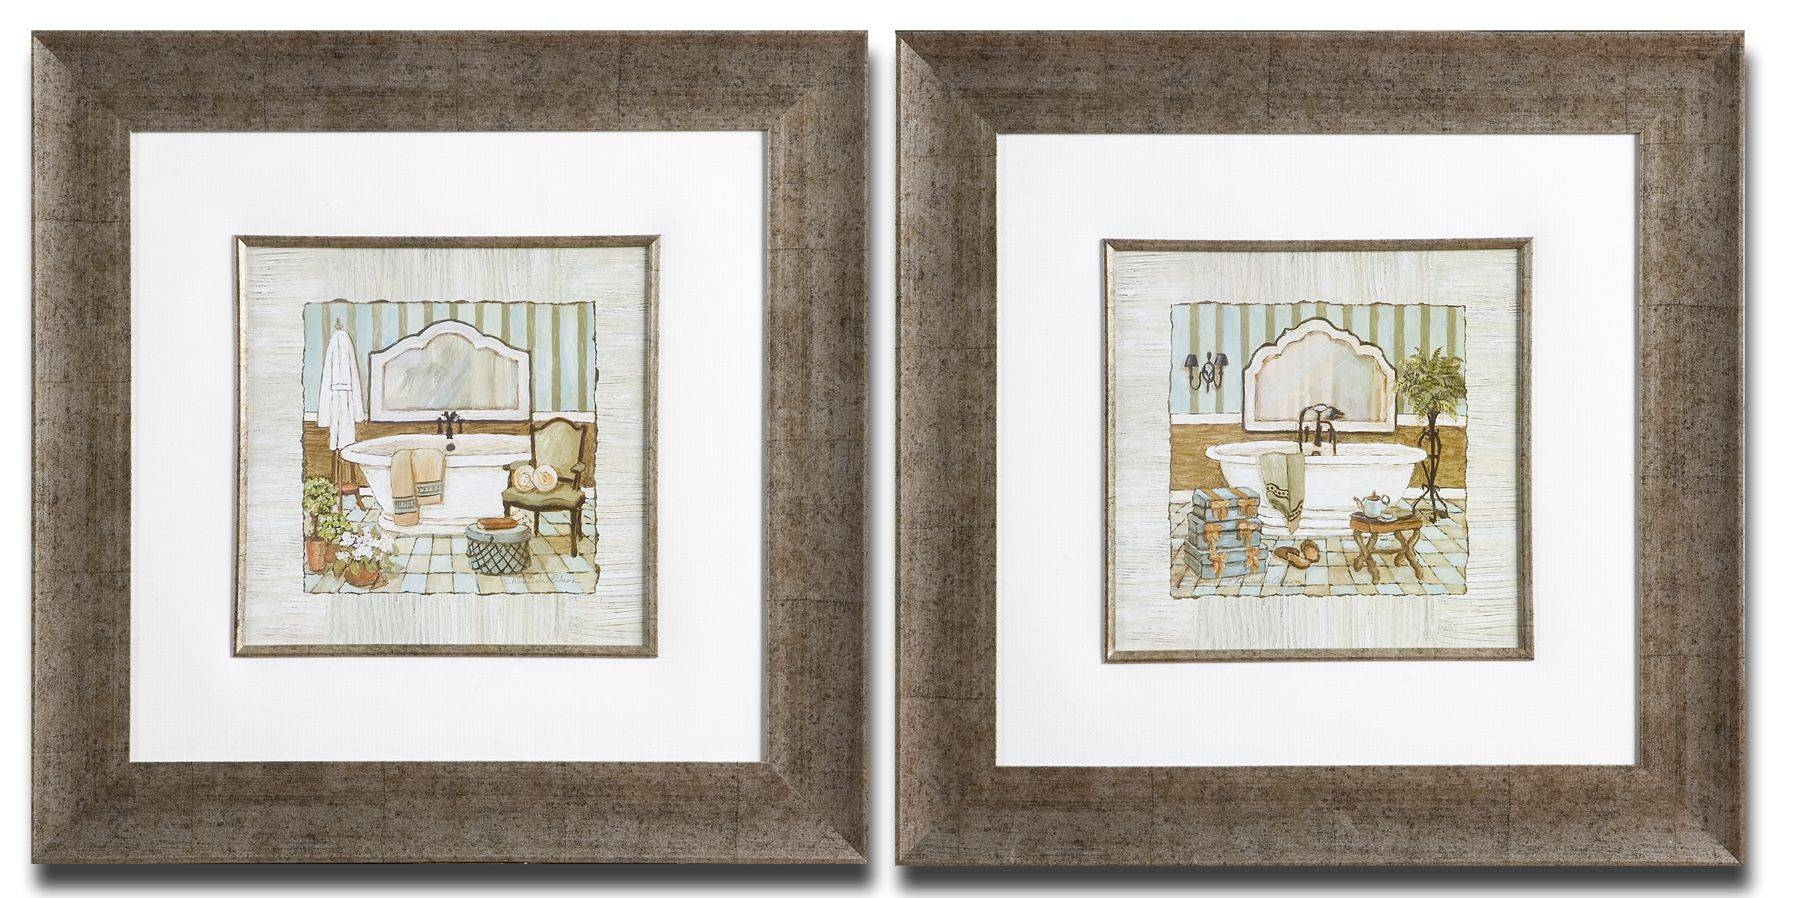 Framed Art For Bathroom, French Bathroom Prints Vintage Bathroom Pertaining To Recent Wall Art Print Sets (View 4 of 20)